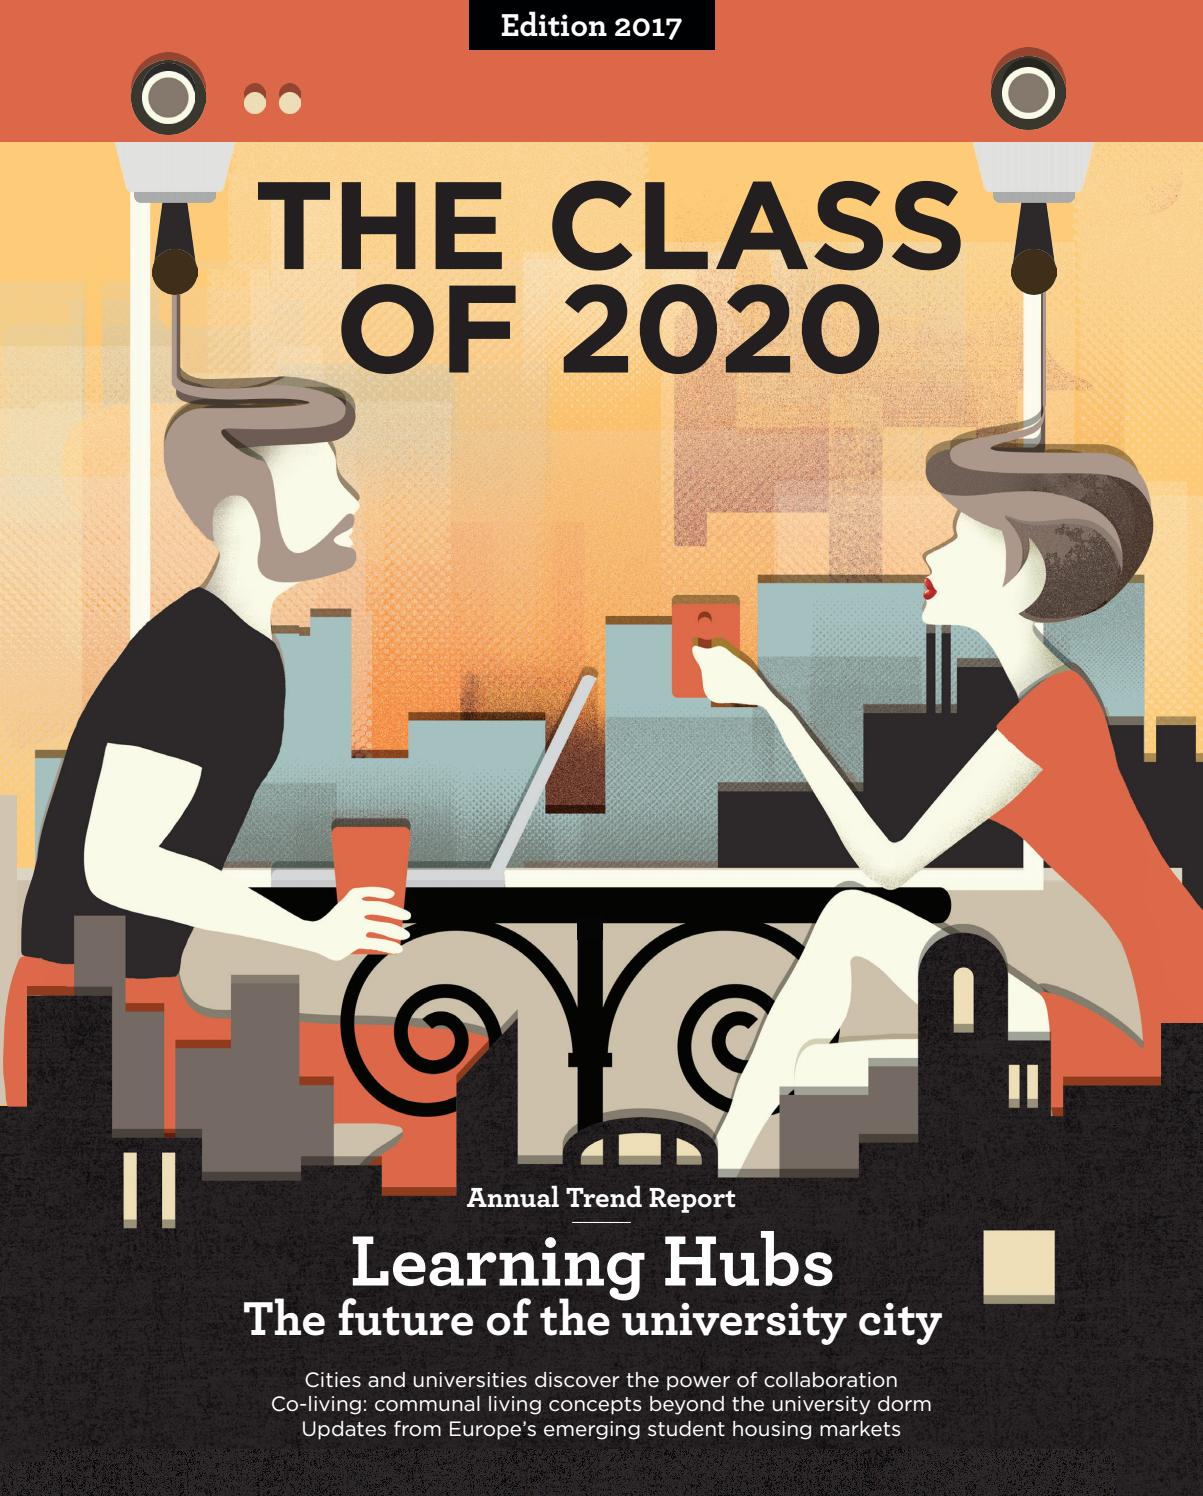 662c3f68deb1f The Class of 2020 Annual Trend Report 2017 by The Class of 2020 - issuu